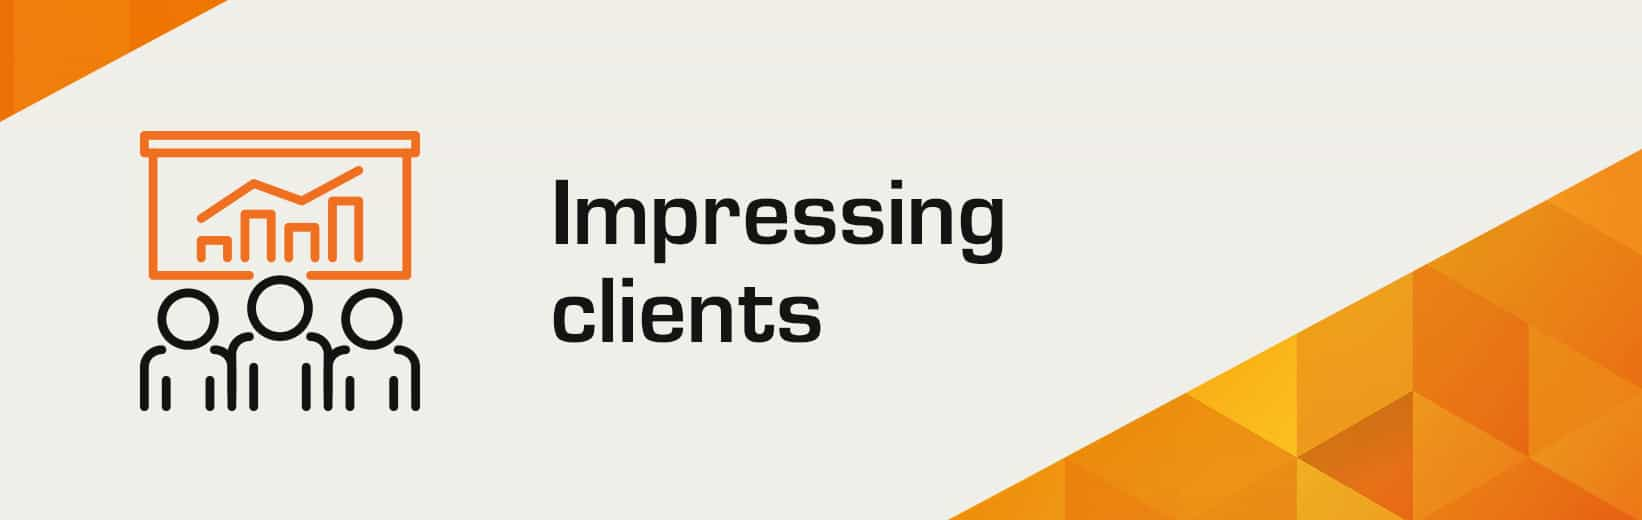 Impressing clients